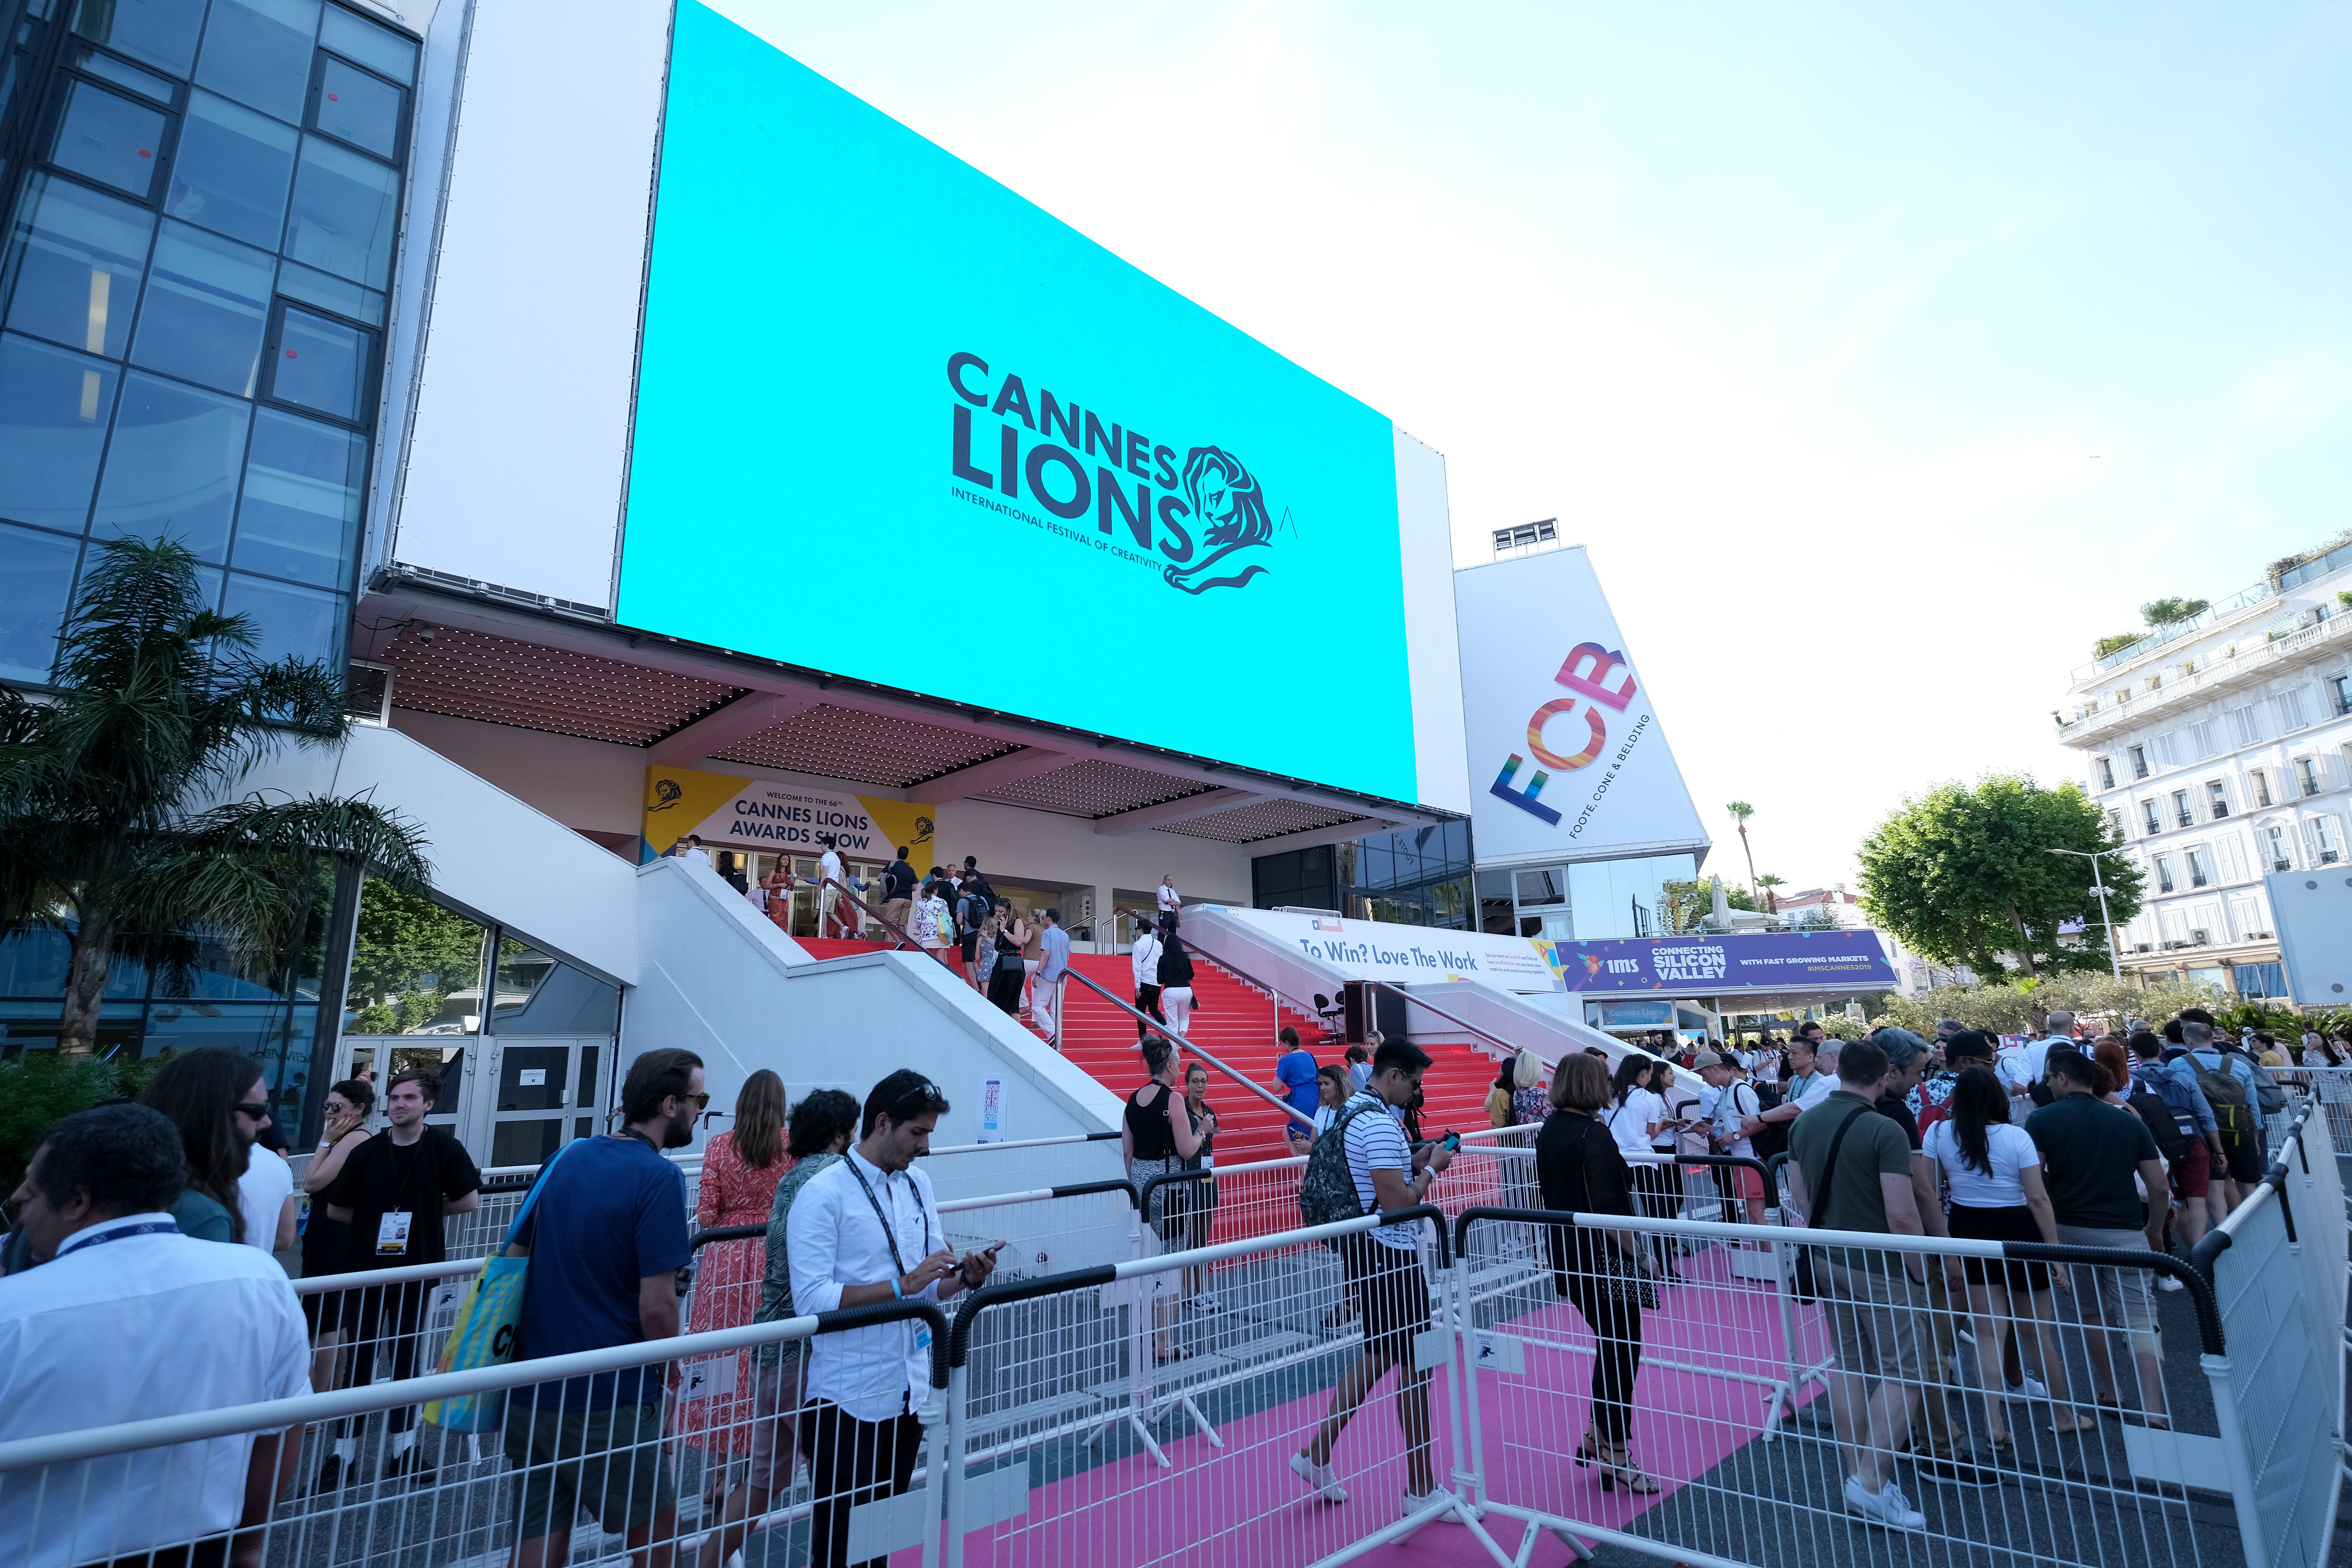 Cannes Lions 2019 trends: Facebook, Google, direct-to-consumer brands